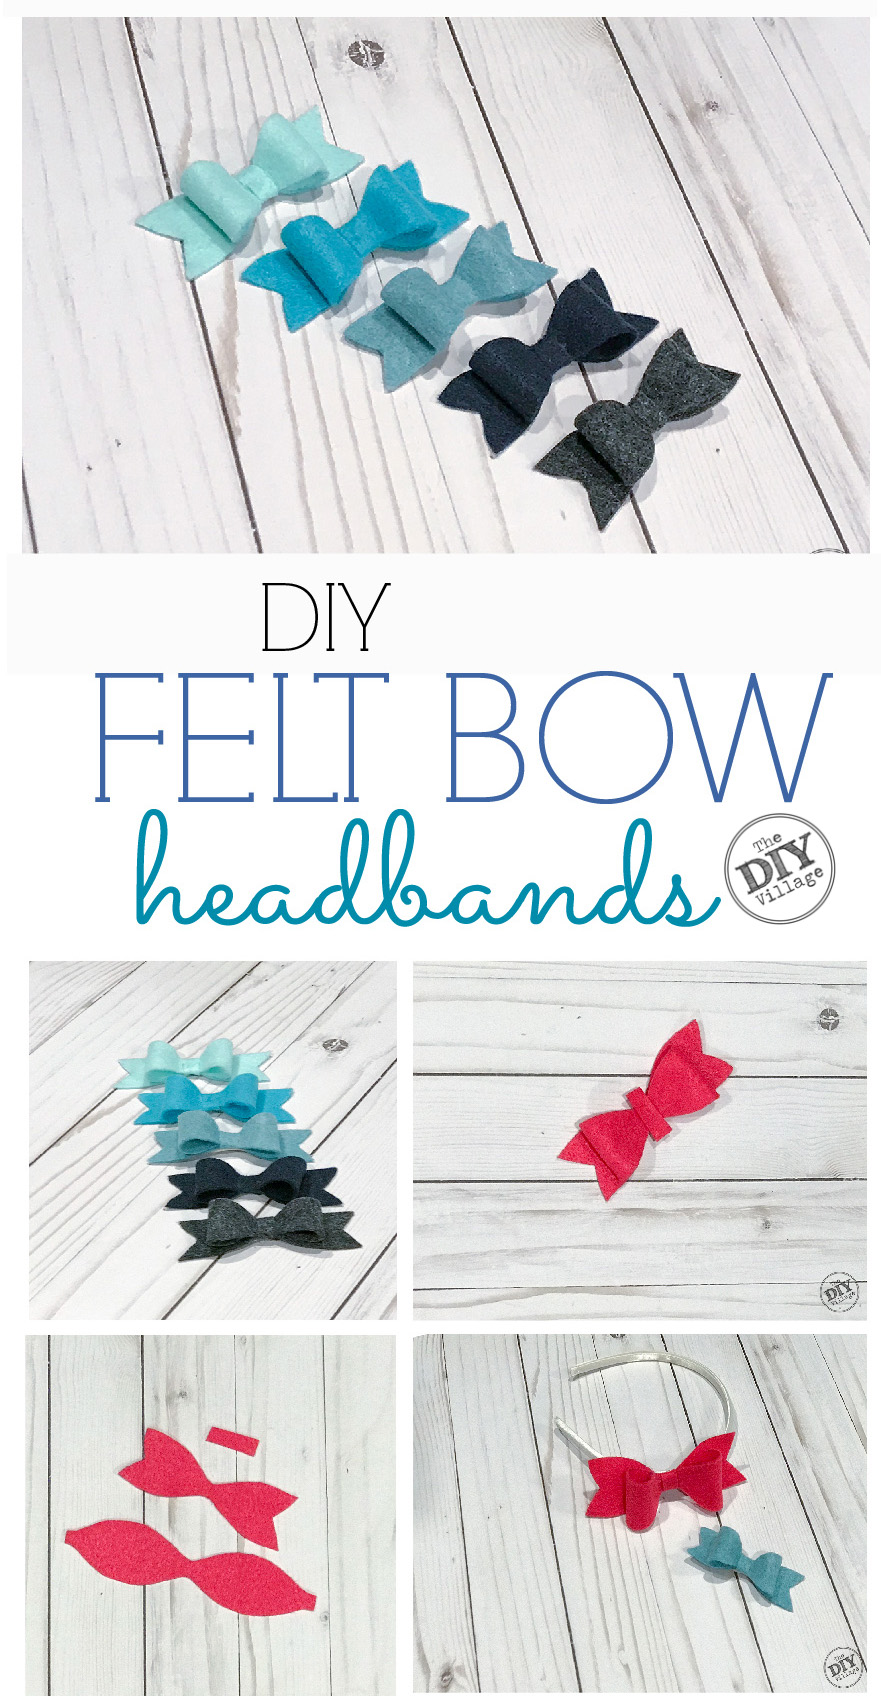 Small felt bows in shades of blues and grays with text